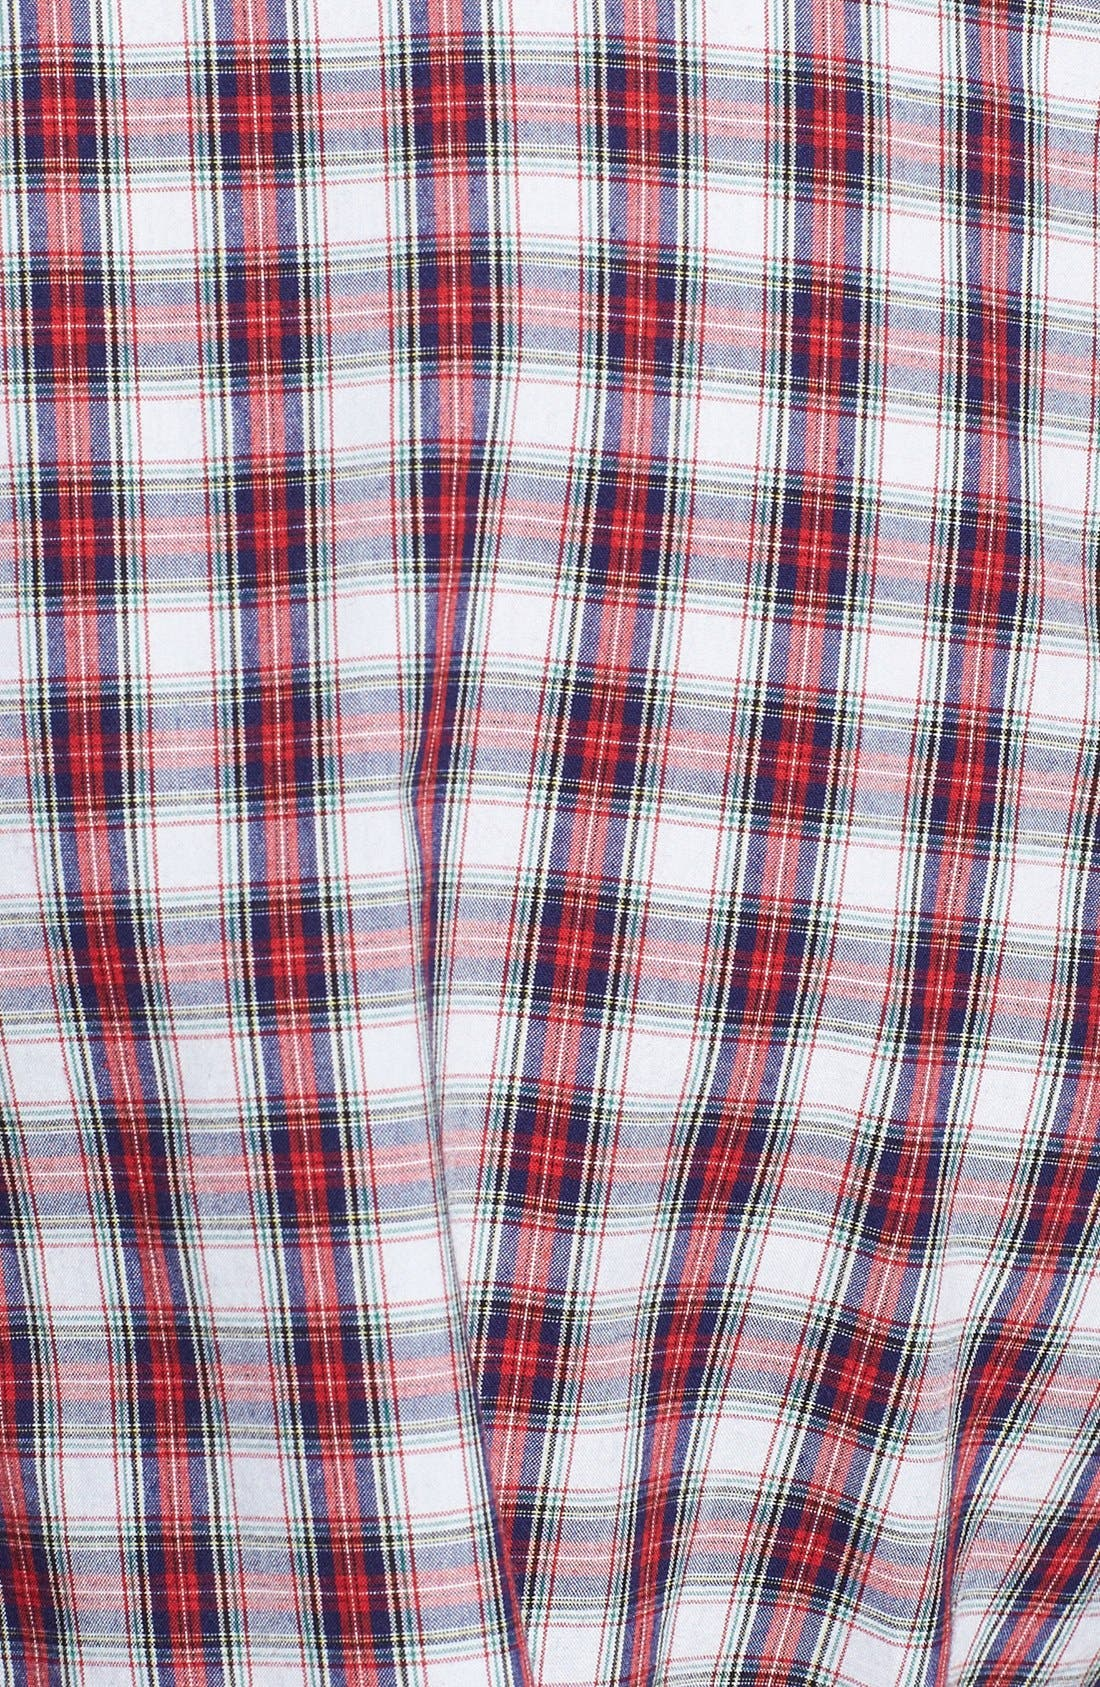 Alternate Image 3  - Jack Spade 'Hawley' Plaid Shirt